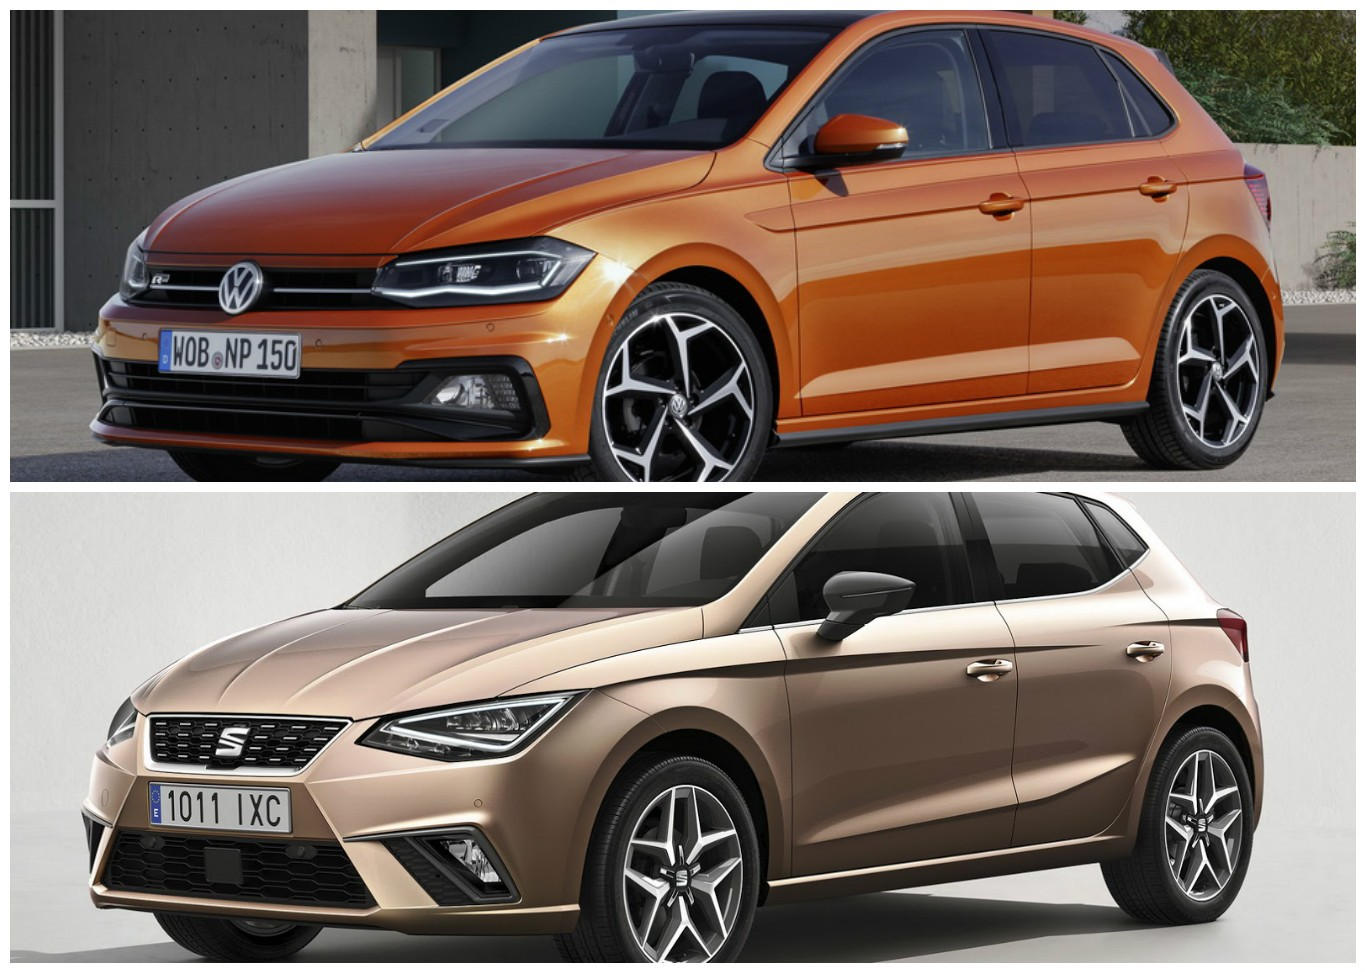 2018 vw polo vs seat ibiza mqb a0 photo comparison. Black Bedroom Furniture Sets. Home Design Ideas